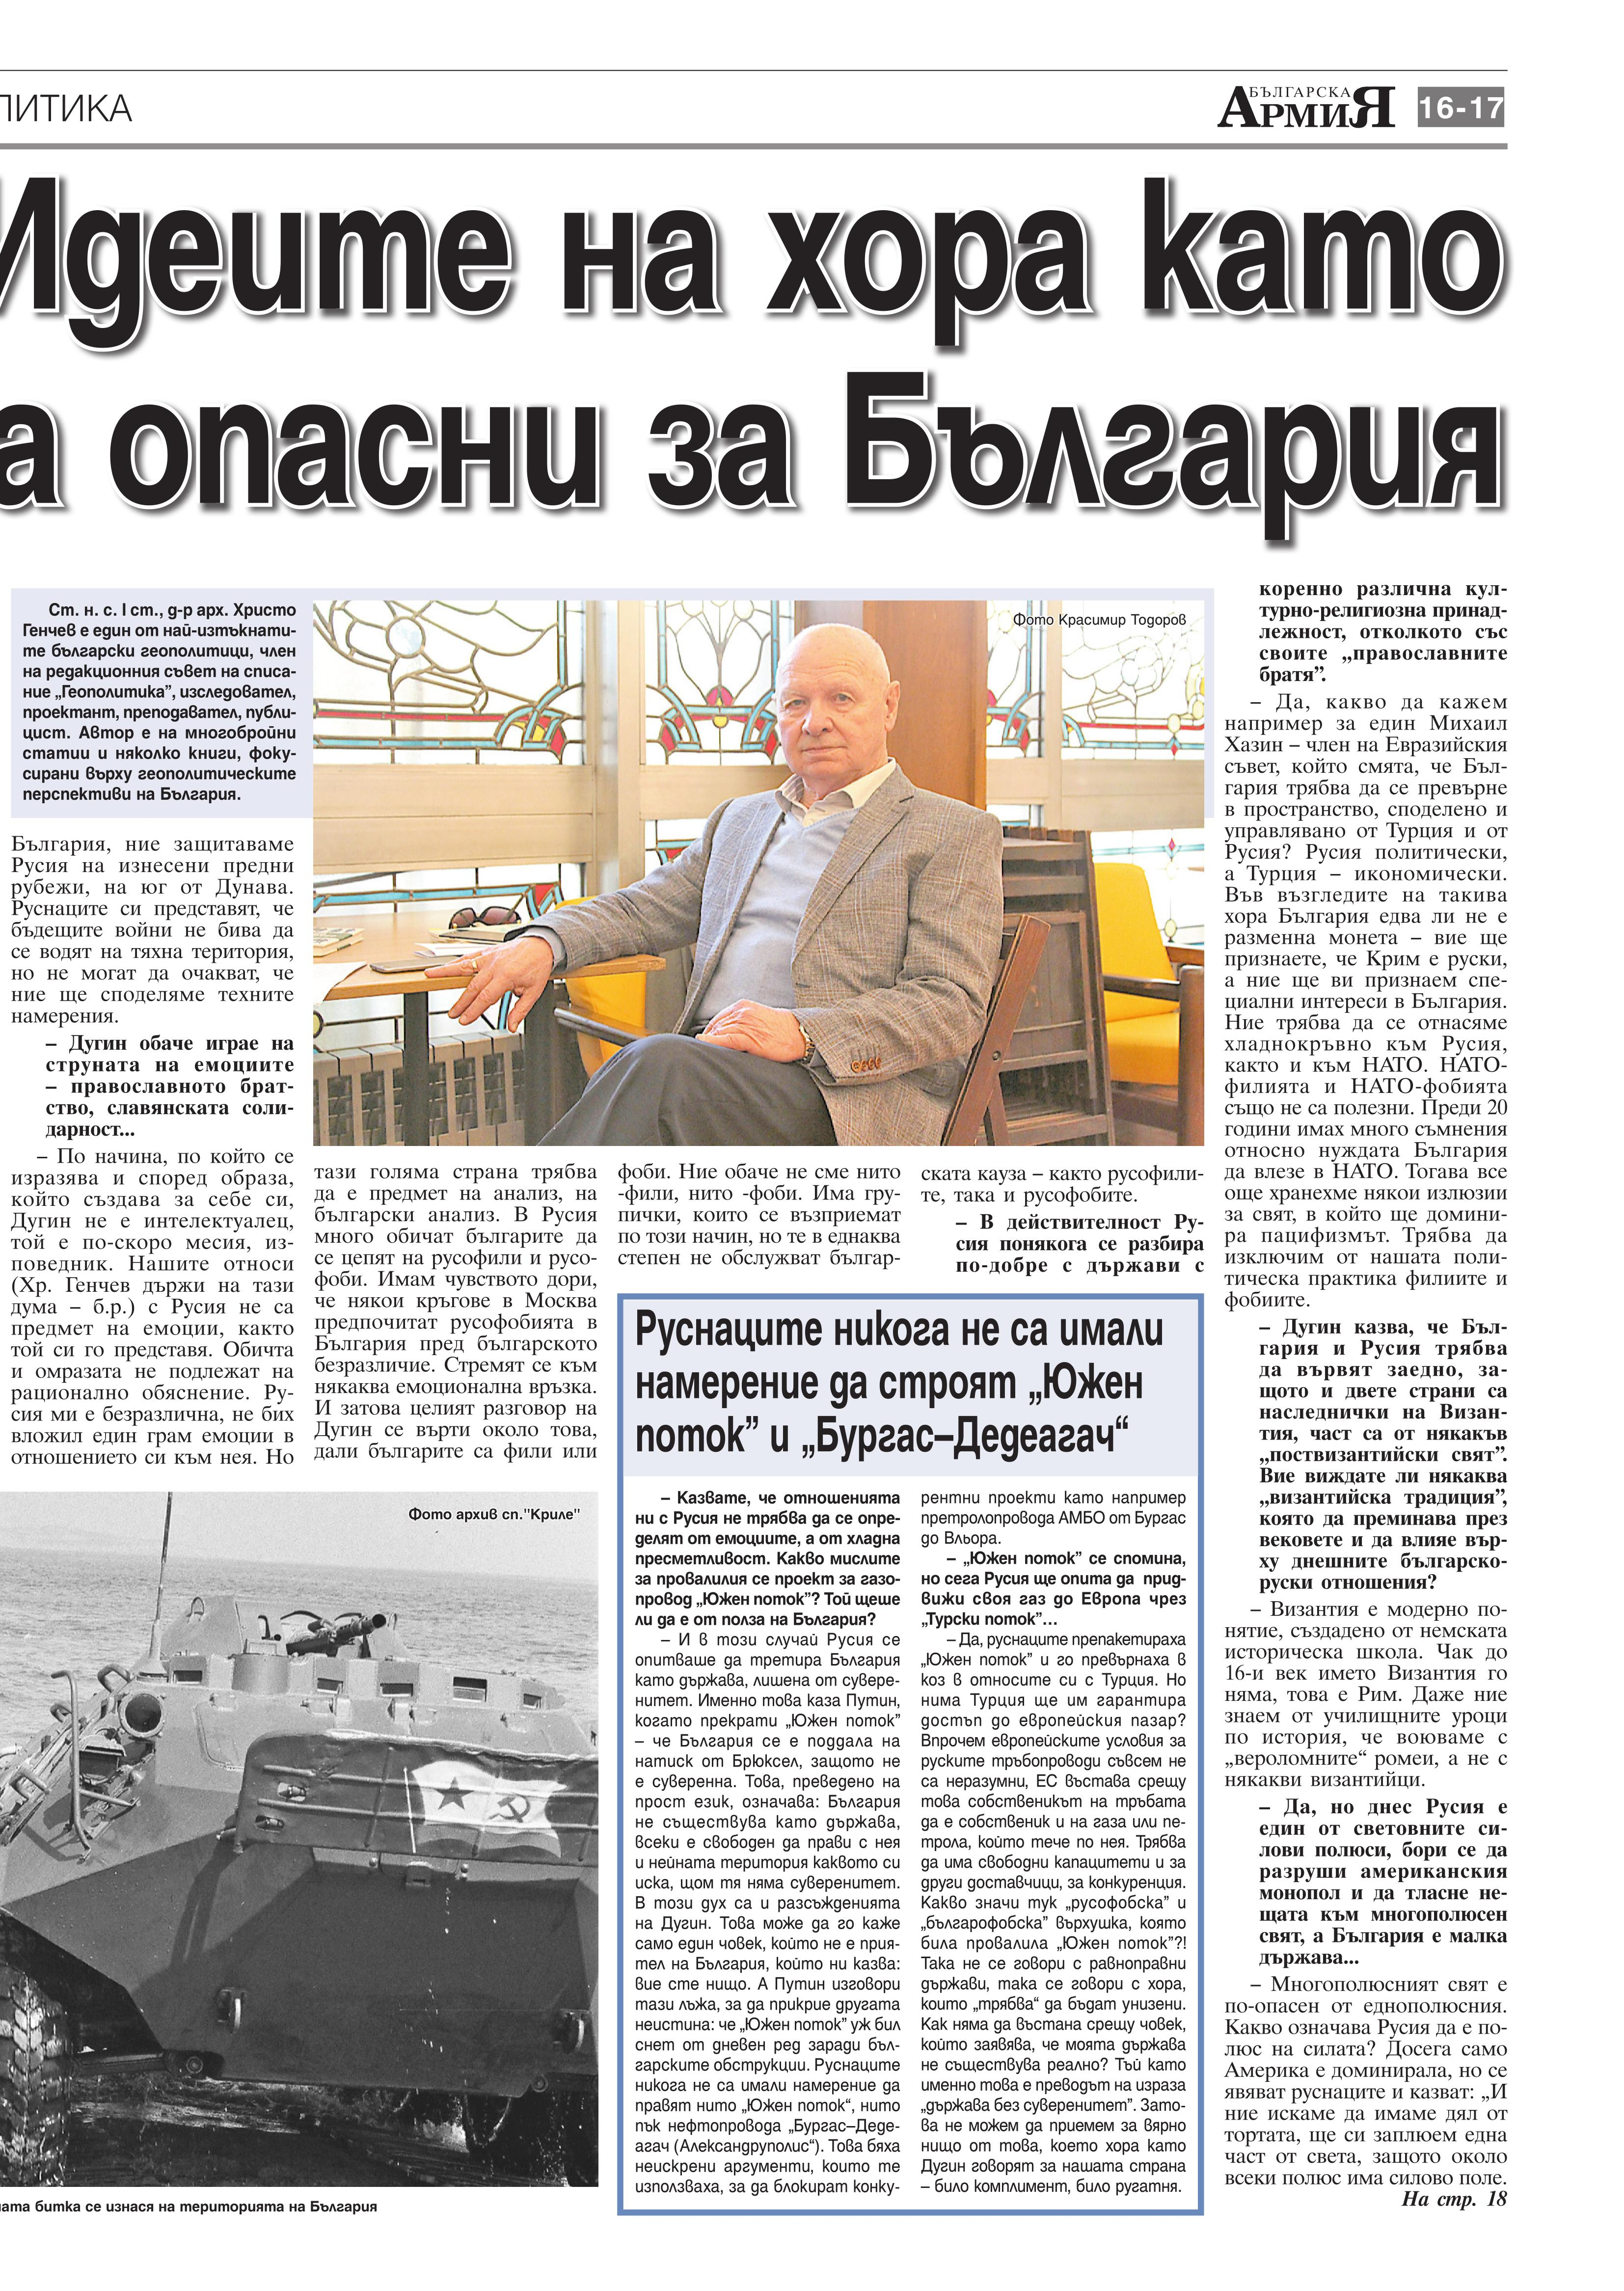 http://armymedia.bg/wp-content/uploads/2015/06/17.page1_-34.jpg